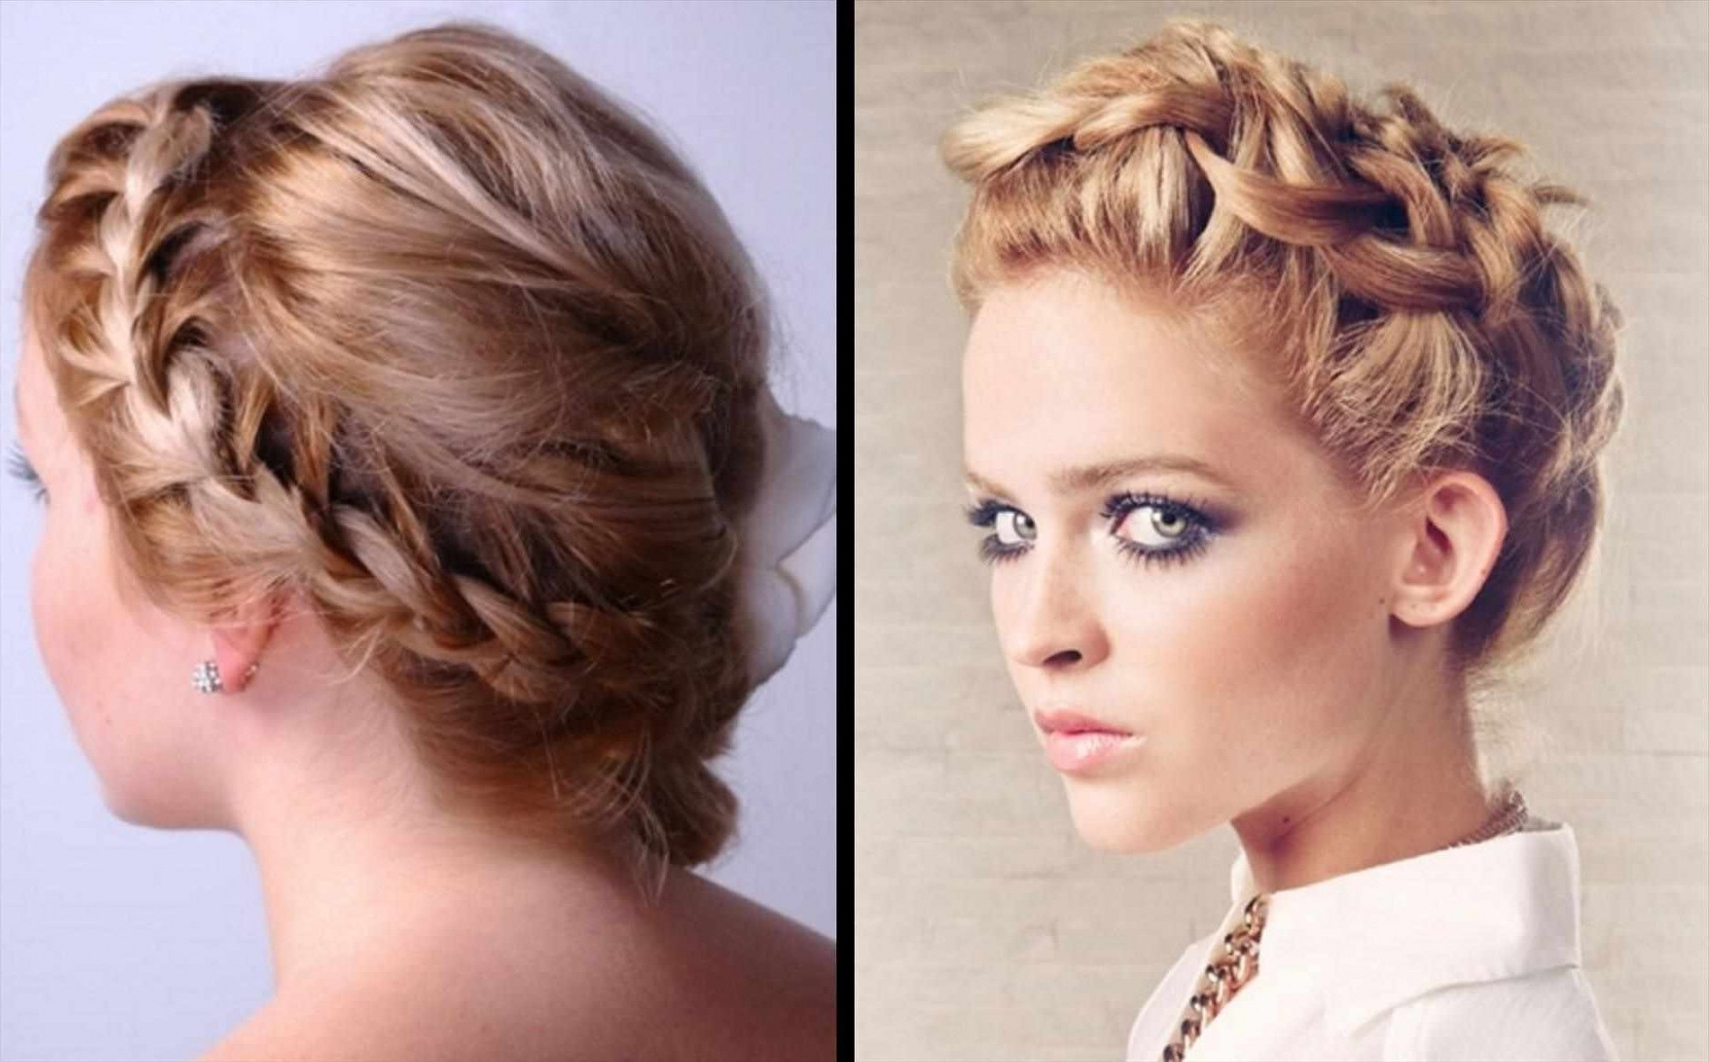 Updos For Really Short Hairstyles And Haircuts Wedding Updo Decor Intended For Short Wedding Updo Hairstyles (View 12 of 15)